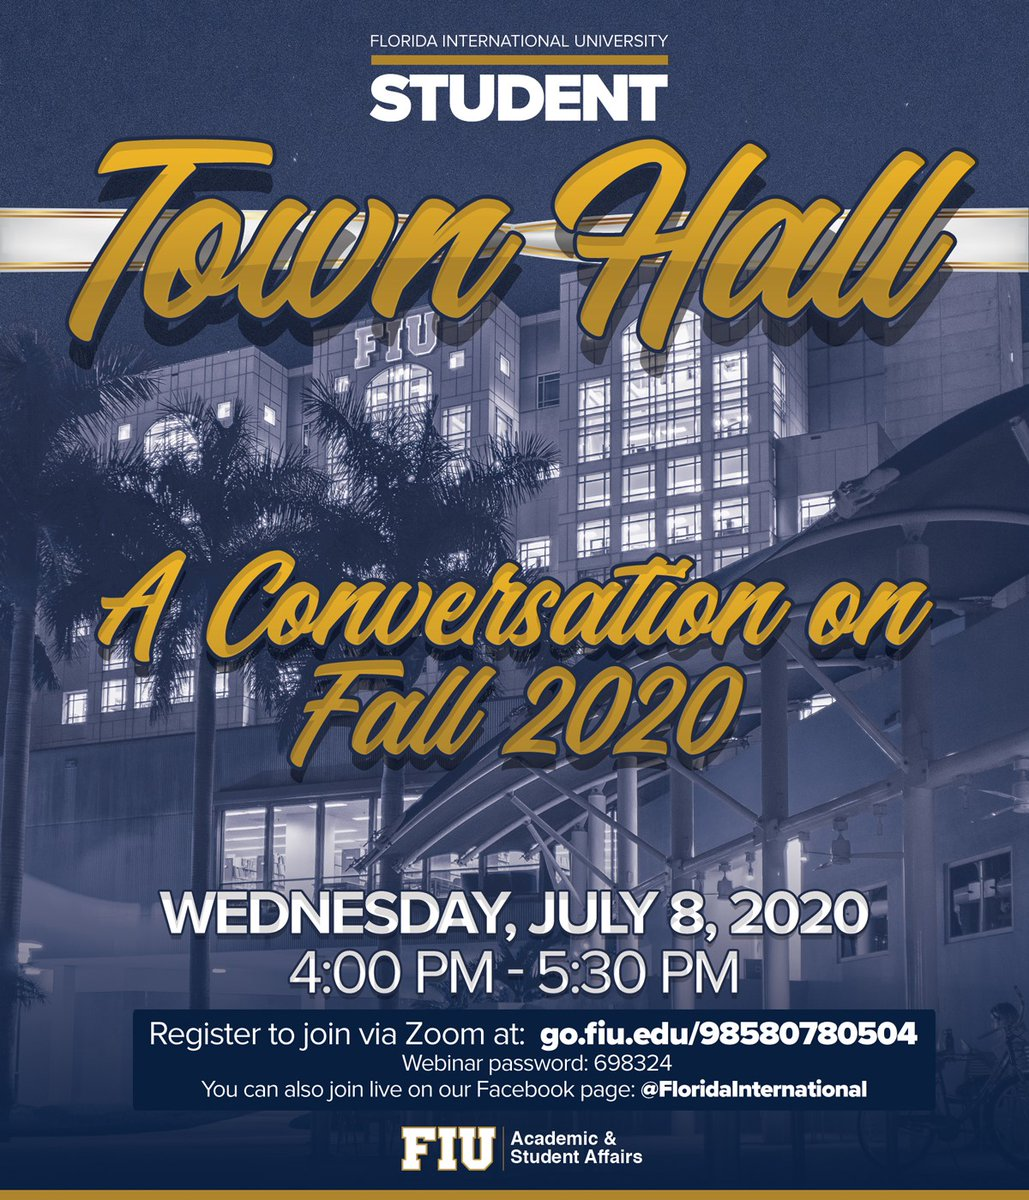 This is your friendly reminder to join us in one hour at 4 pm for the FIU Student Town Hall, a conversation about Fall 2020 #FIUReopening. Two ways to join live. Via Zoom: go.fiu.edu/98580780504 Via FB Live: facebook.com/floridainterna…